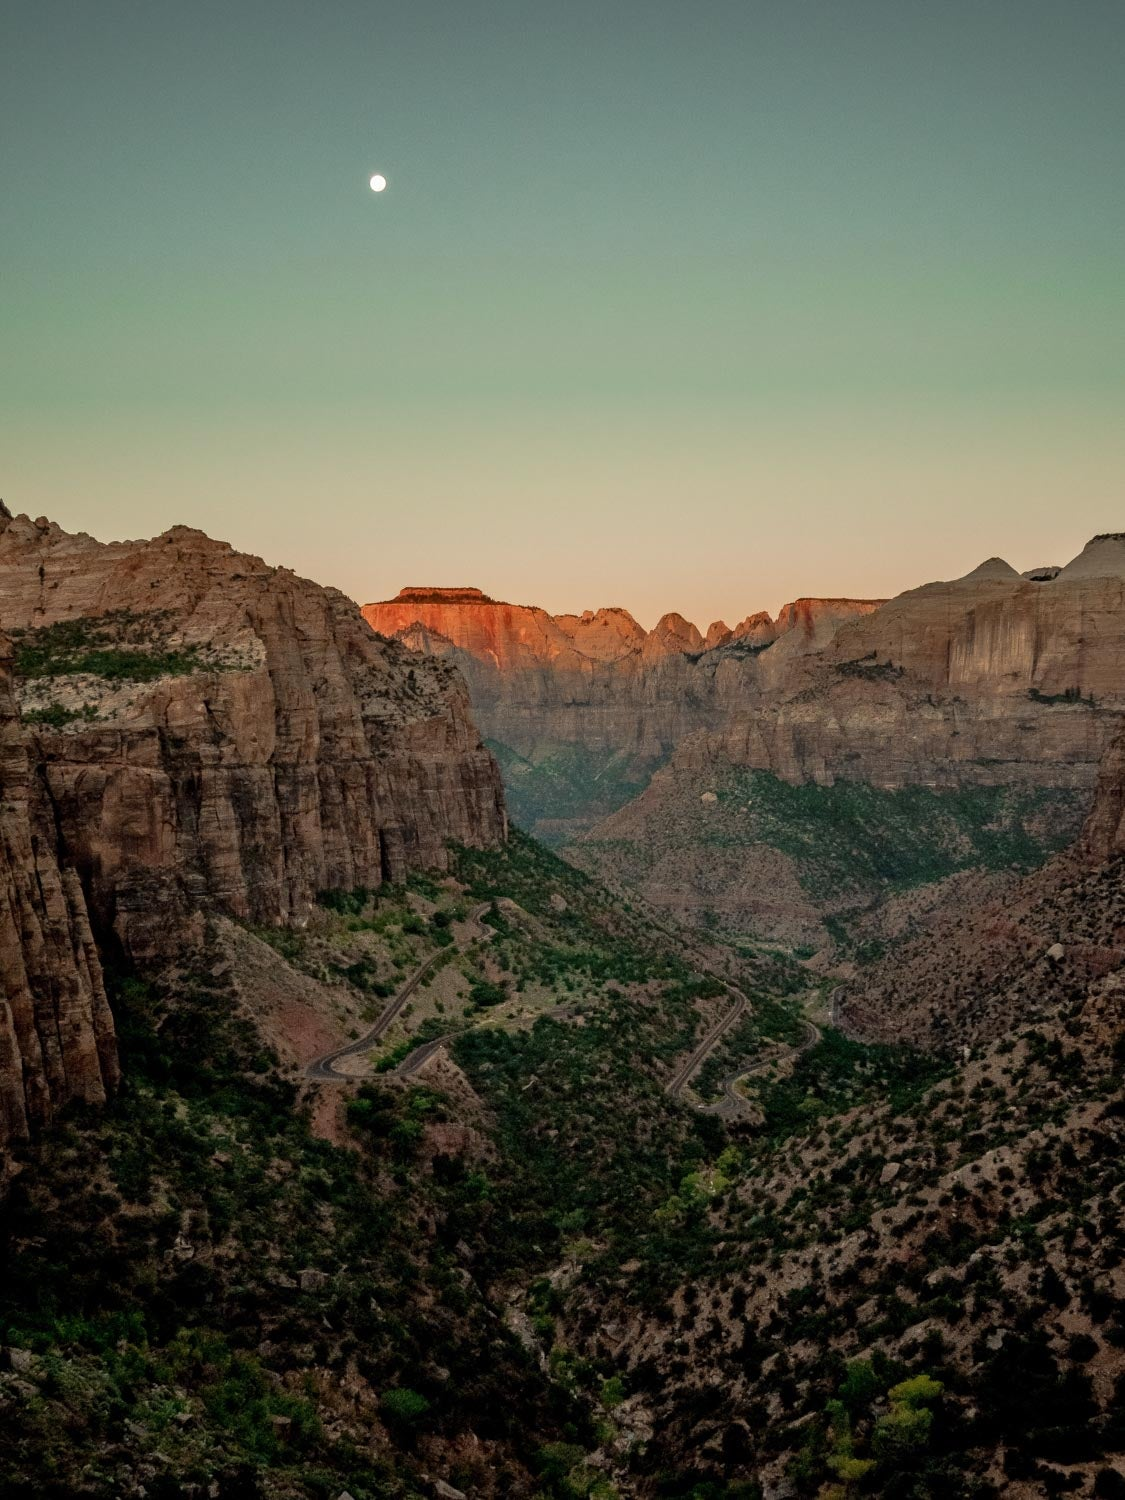 panoramic view of Zion Canyon at dusk with moon in sky